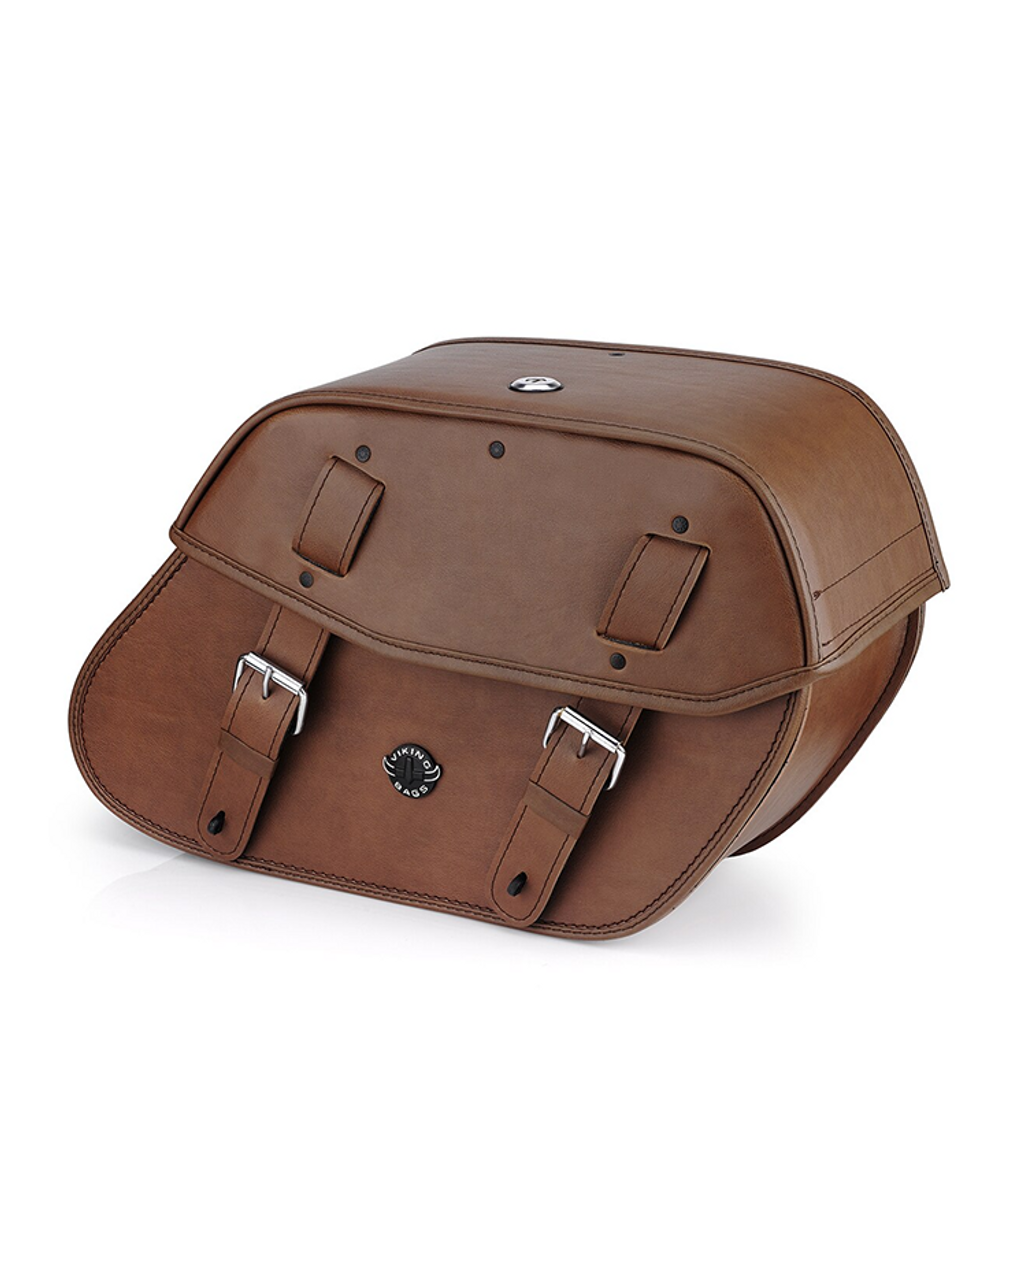 Viking Odin Brown Large Motorcycle Saddlebags For Harley Softail Breakout Main View